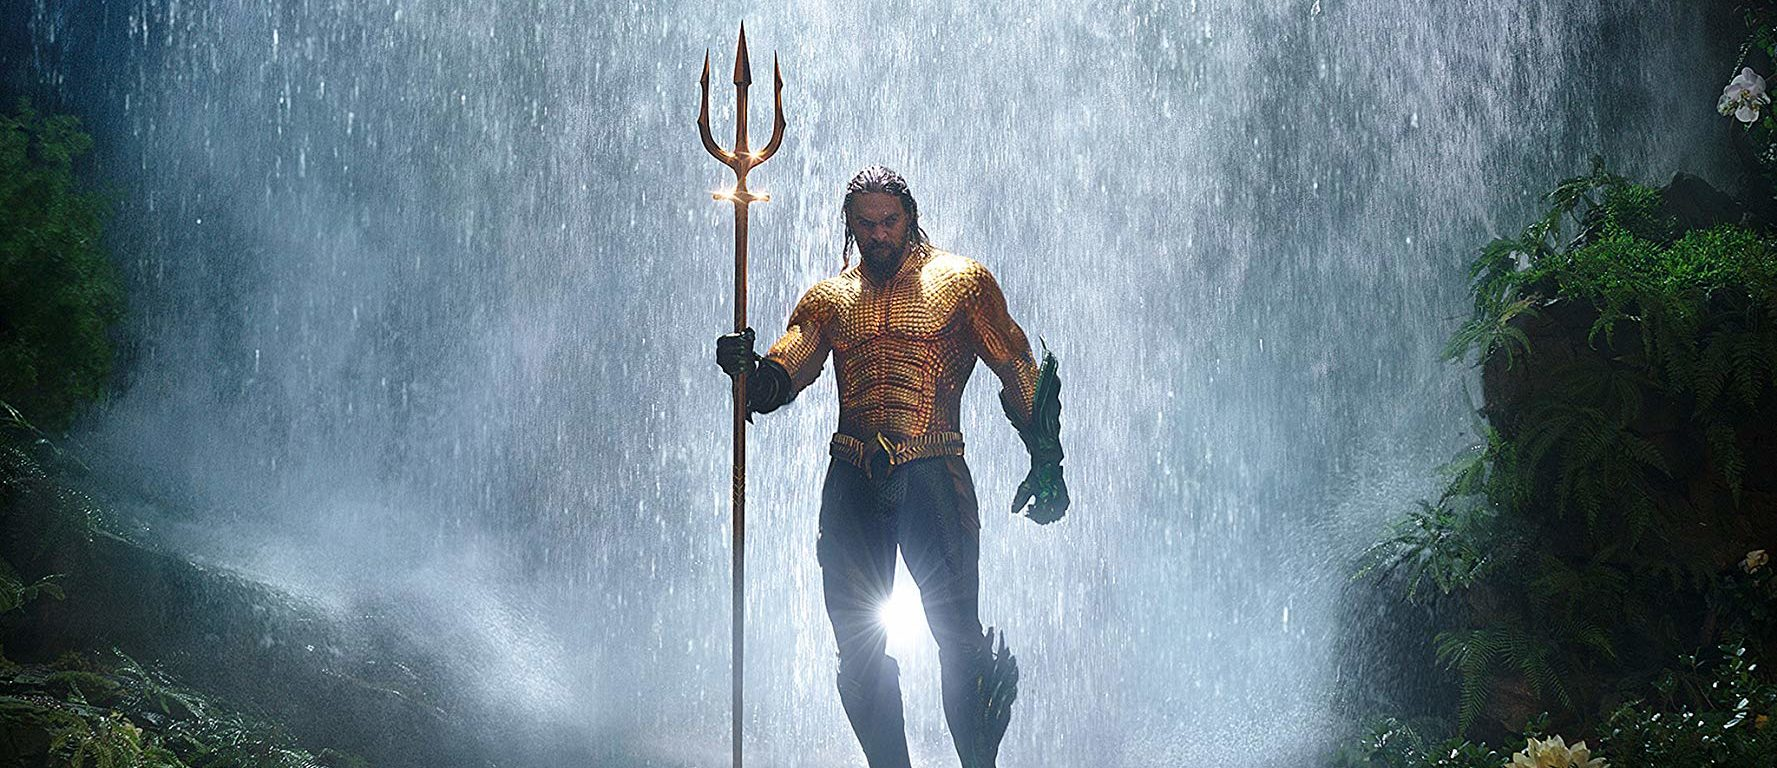 Aquaman (2018) Review